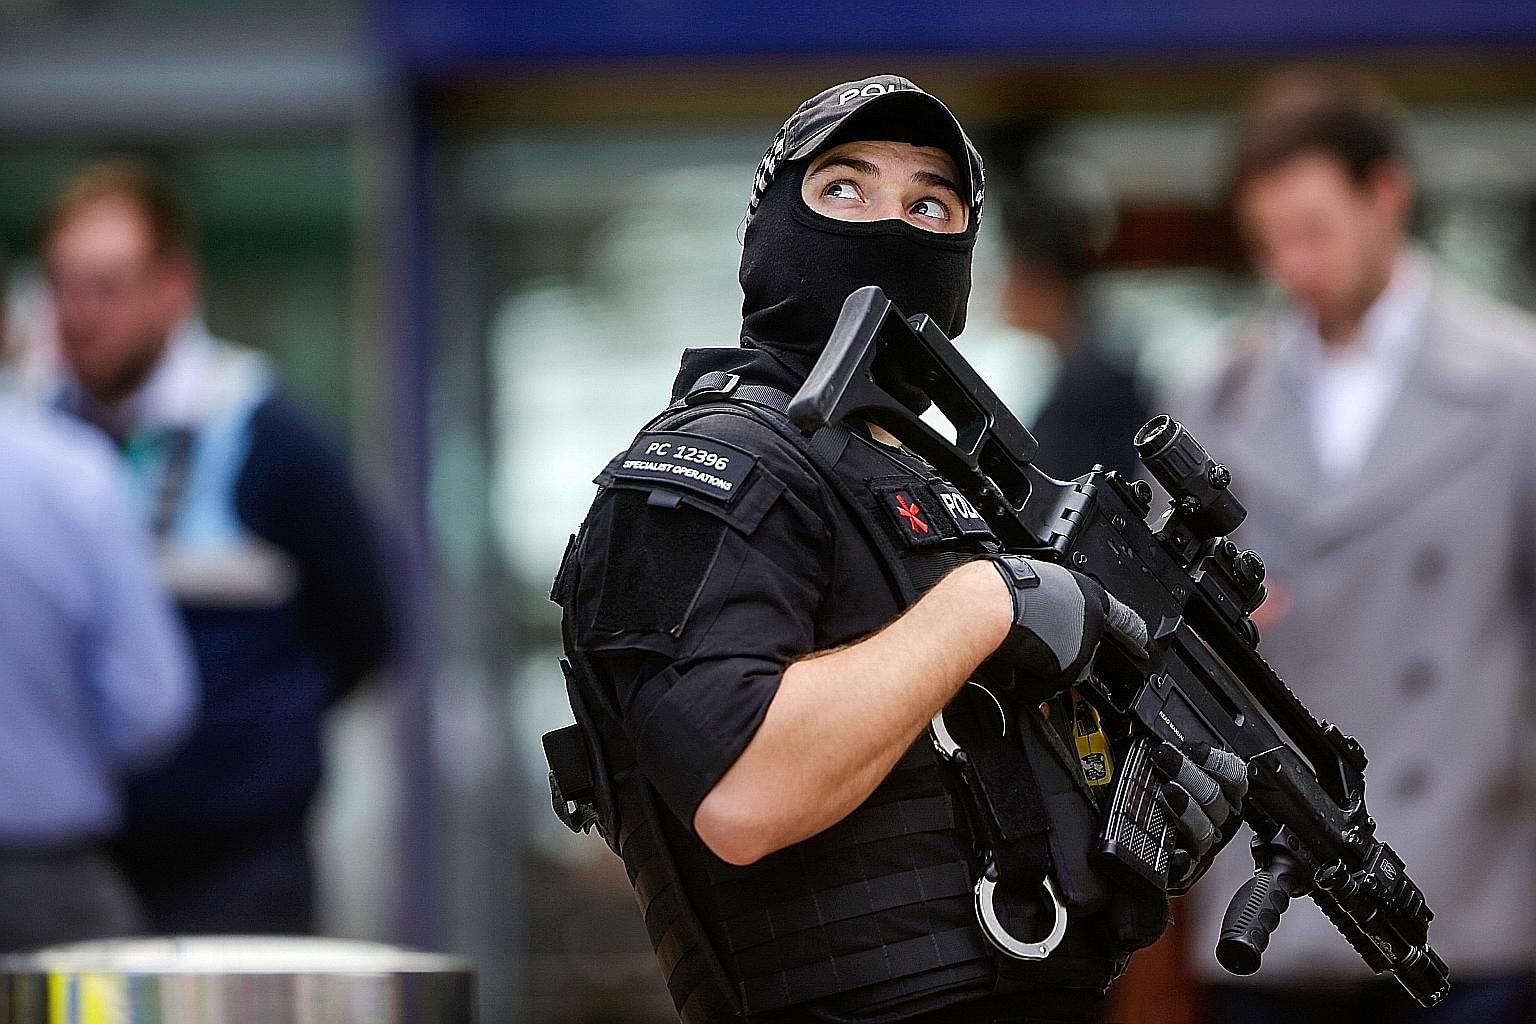 An armed officer patrolling Manchester Piccadilly railway station on Tuesday after a terror attack the night before at a pop concert left at least 22 dead.